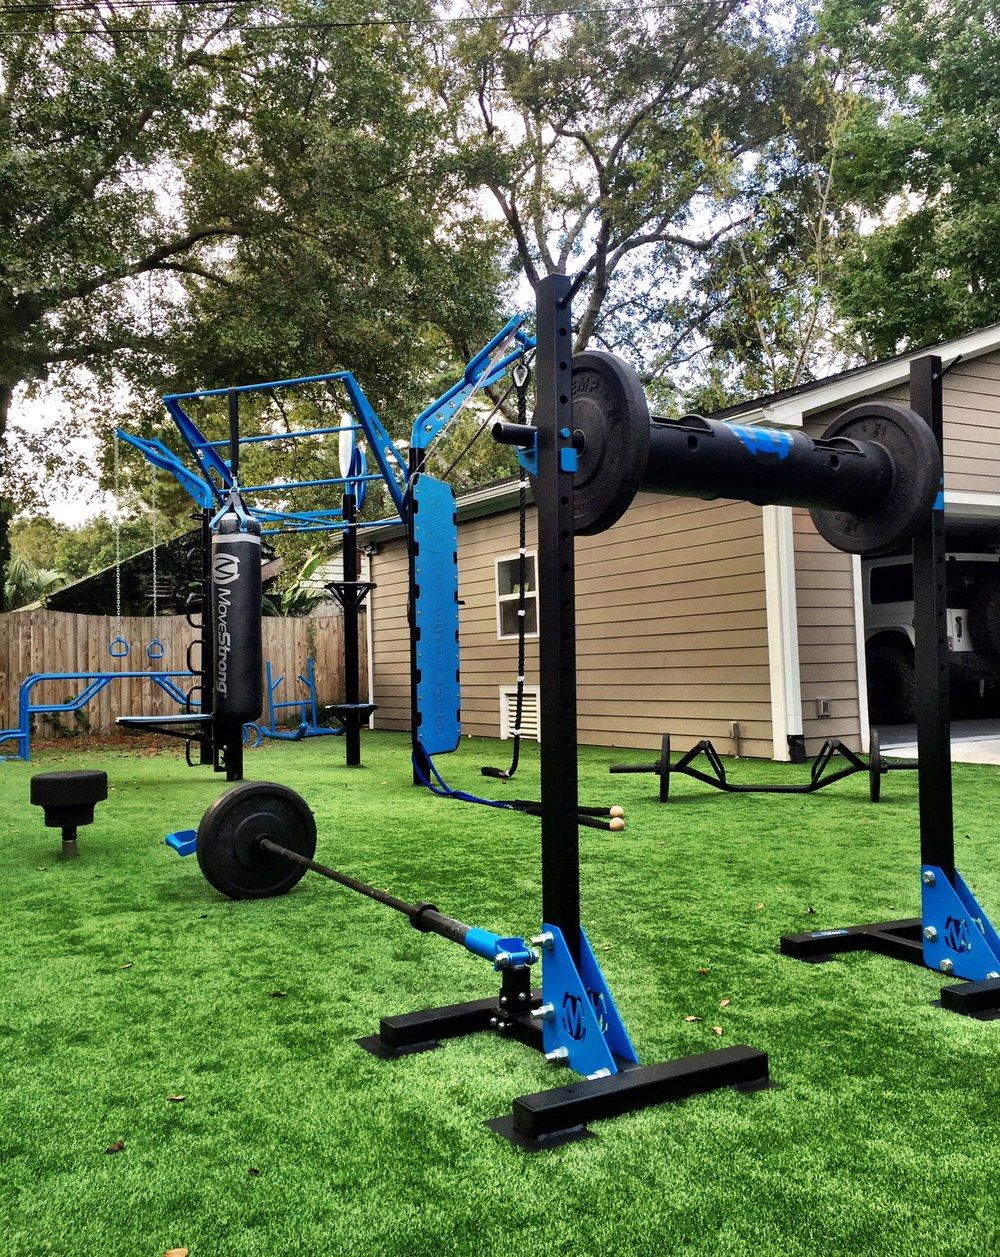 Outdoor gym movestrong post t rex fts with climber bar